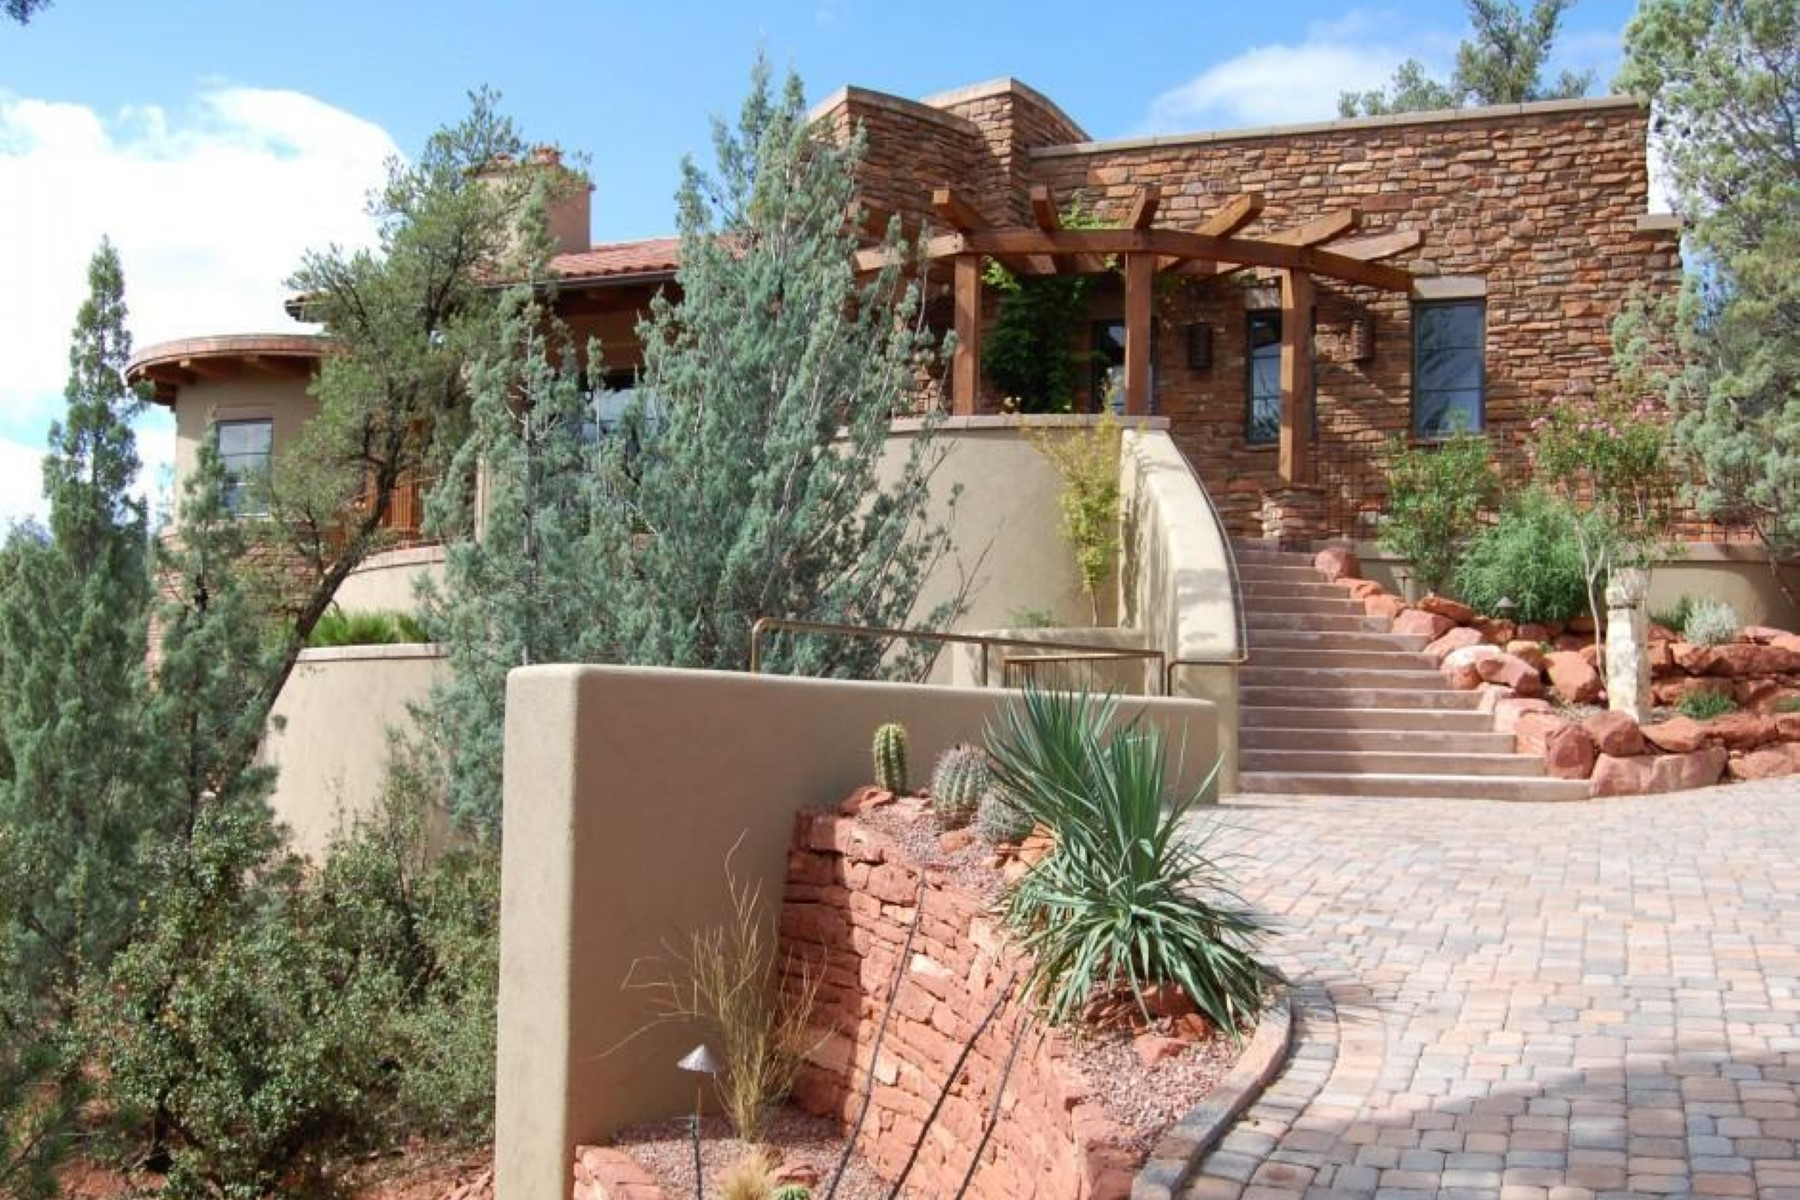 Casa Unifamiliar por un Venta en Custom Southwest Masterpiece 400 Little Scout Rd Sedona, Arizona 86336 Estados Unidos